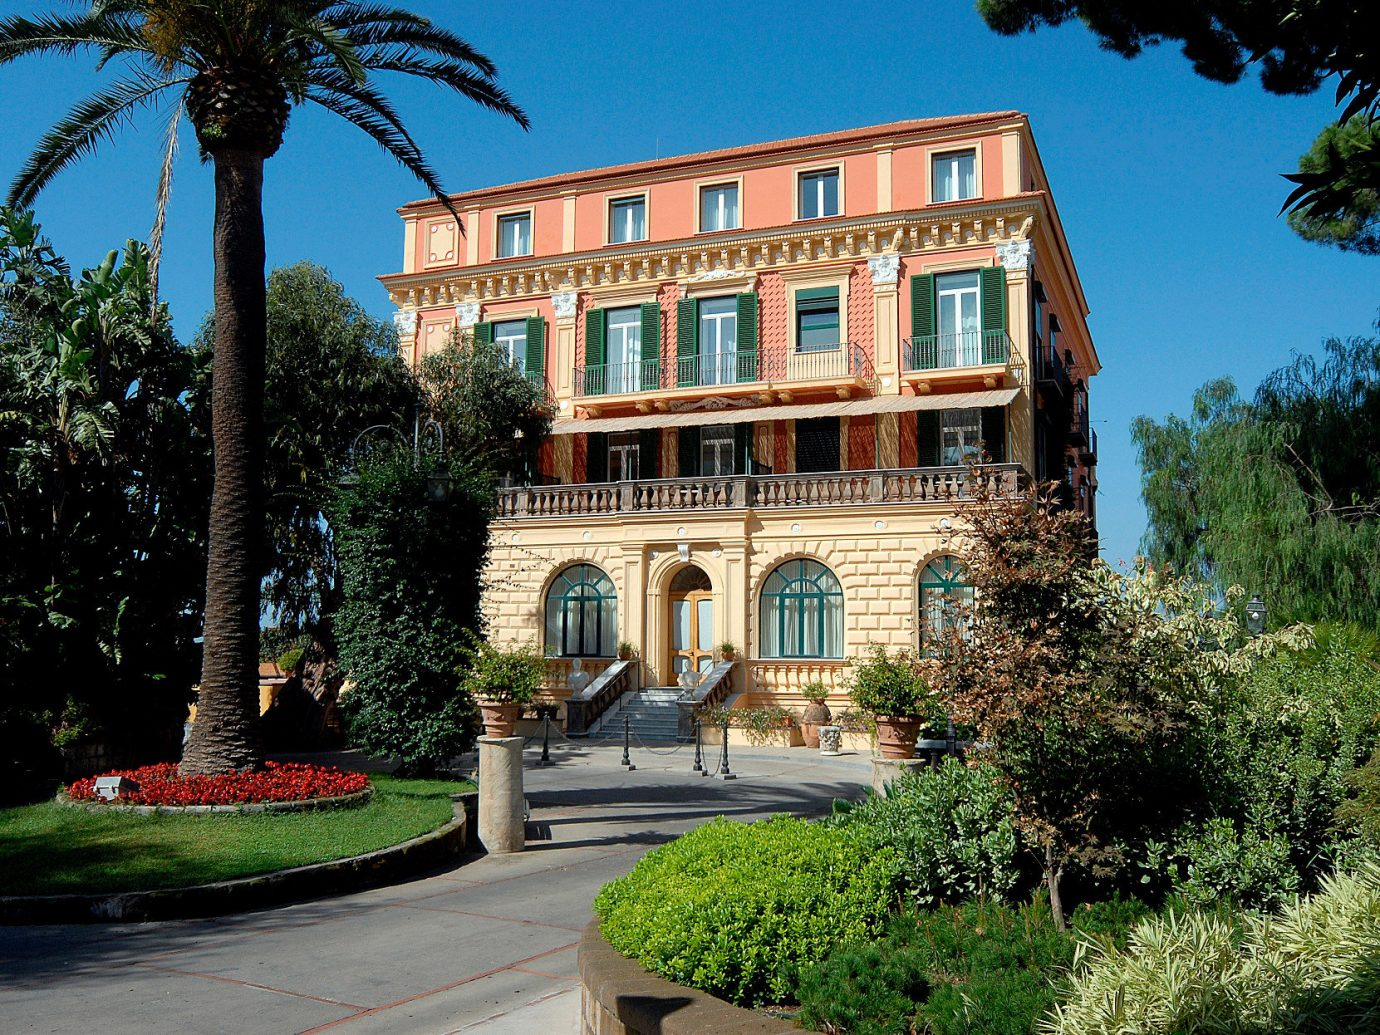 Exterior view of Grand Hotel Excelsior Vittoria Sorrento, Italy